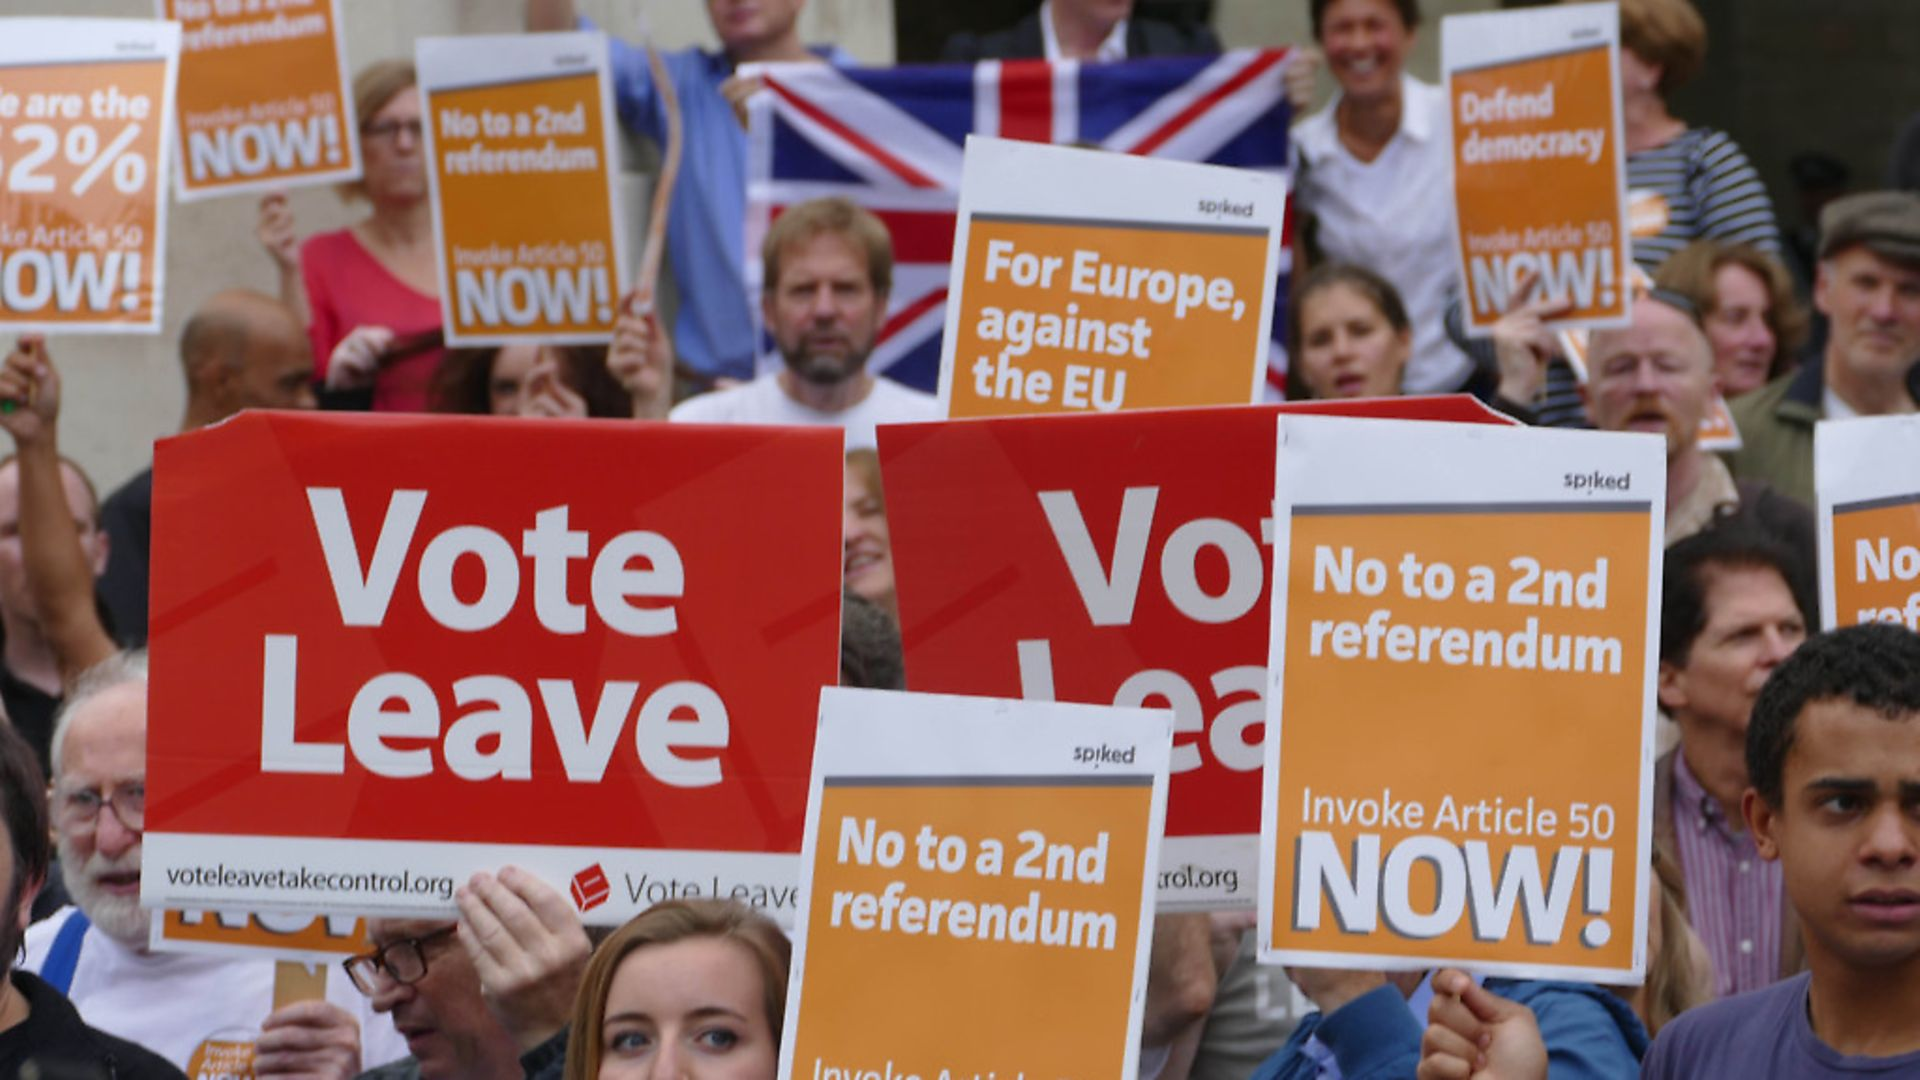 Pro-Brexit demonstration in London. Photograph: NurPhoto. - Credit: SIPA USA/PA Images